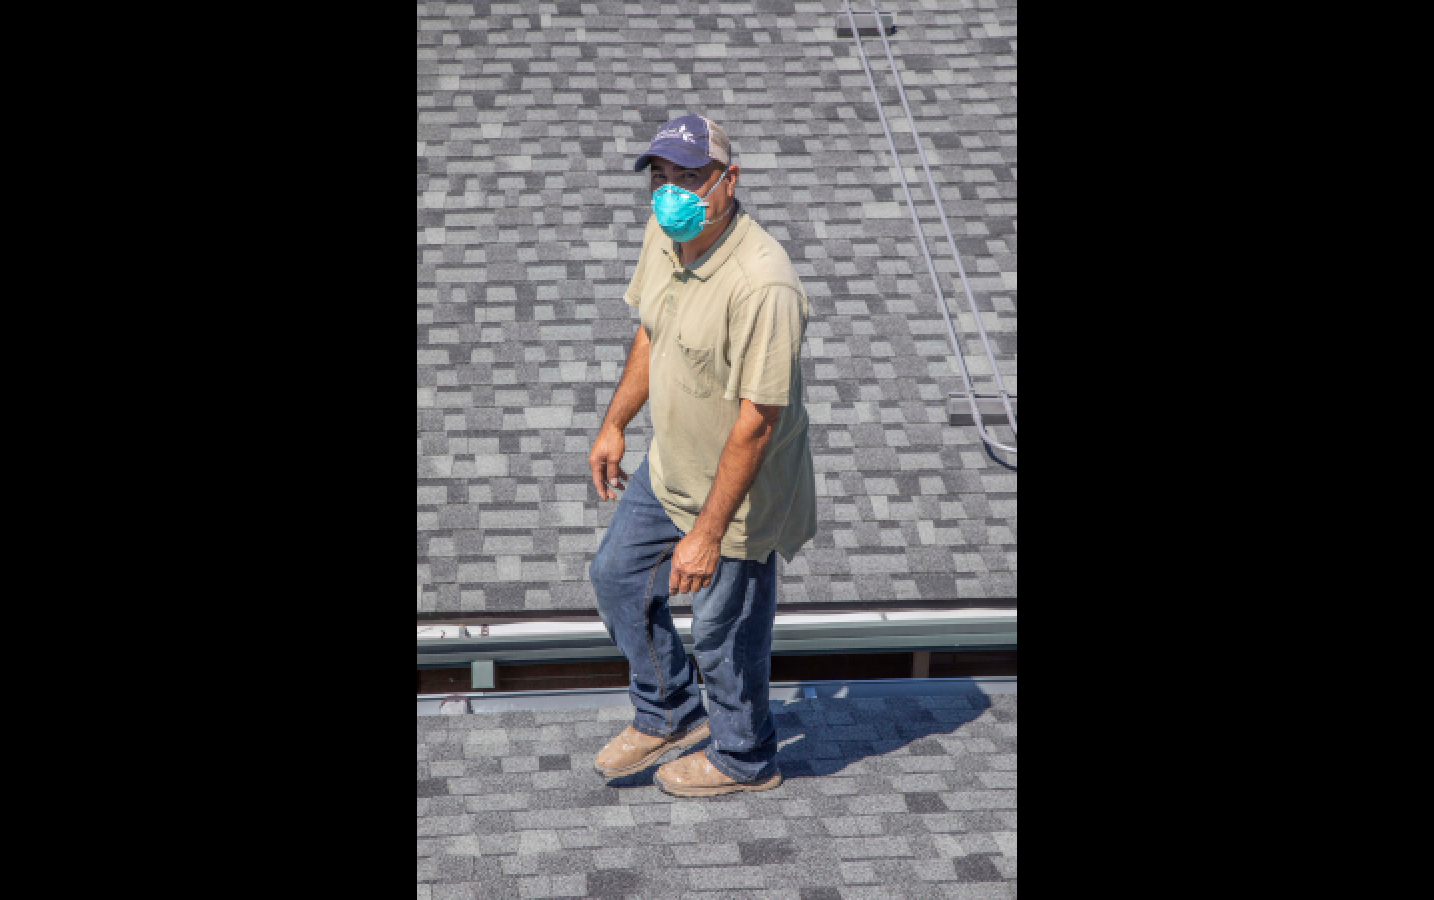 Antonio on a roof, totally at ease. Antonio seems to know how to do everything (HVAC, electric, plumbing, painting, woodwork, detective work… the list goes on) and always does so with such warm-hearted joy.